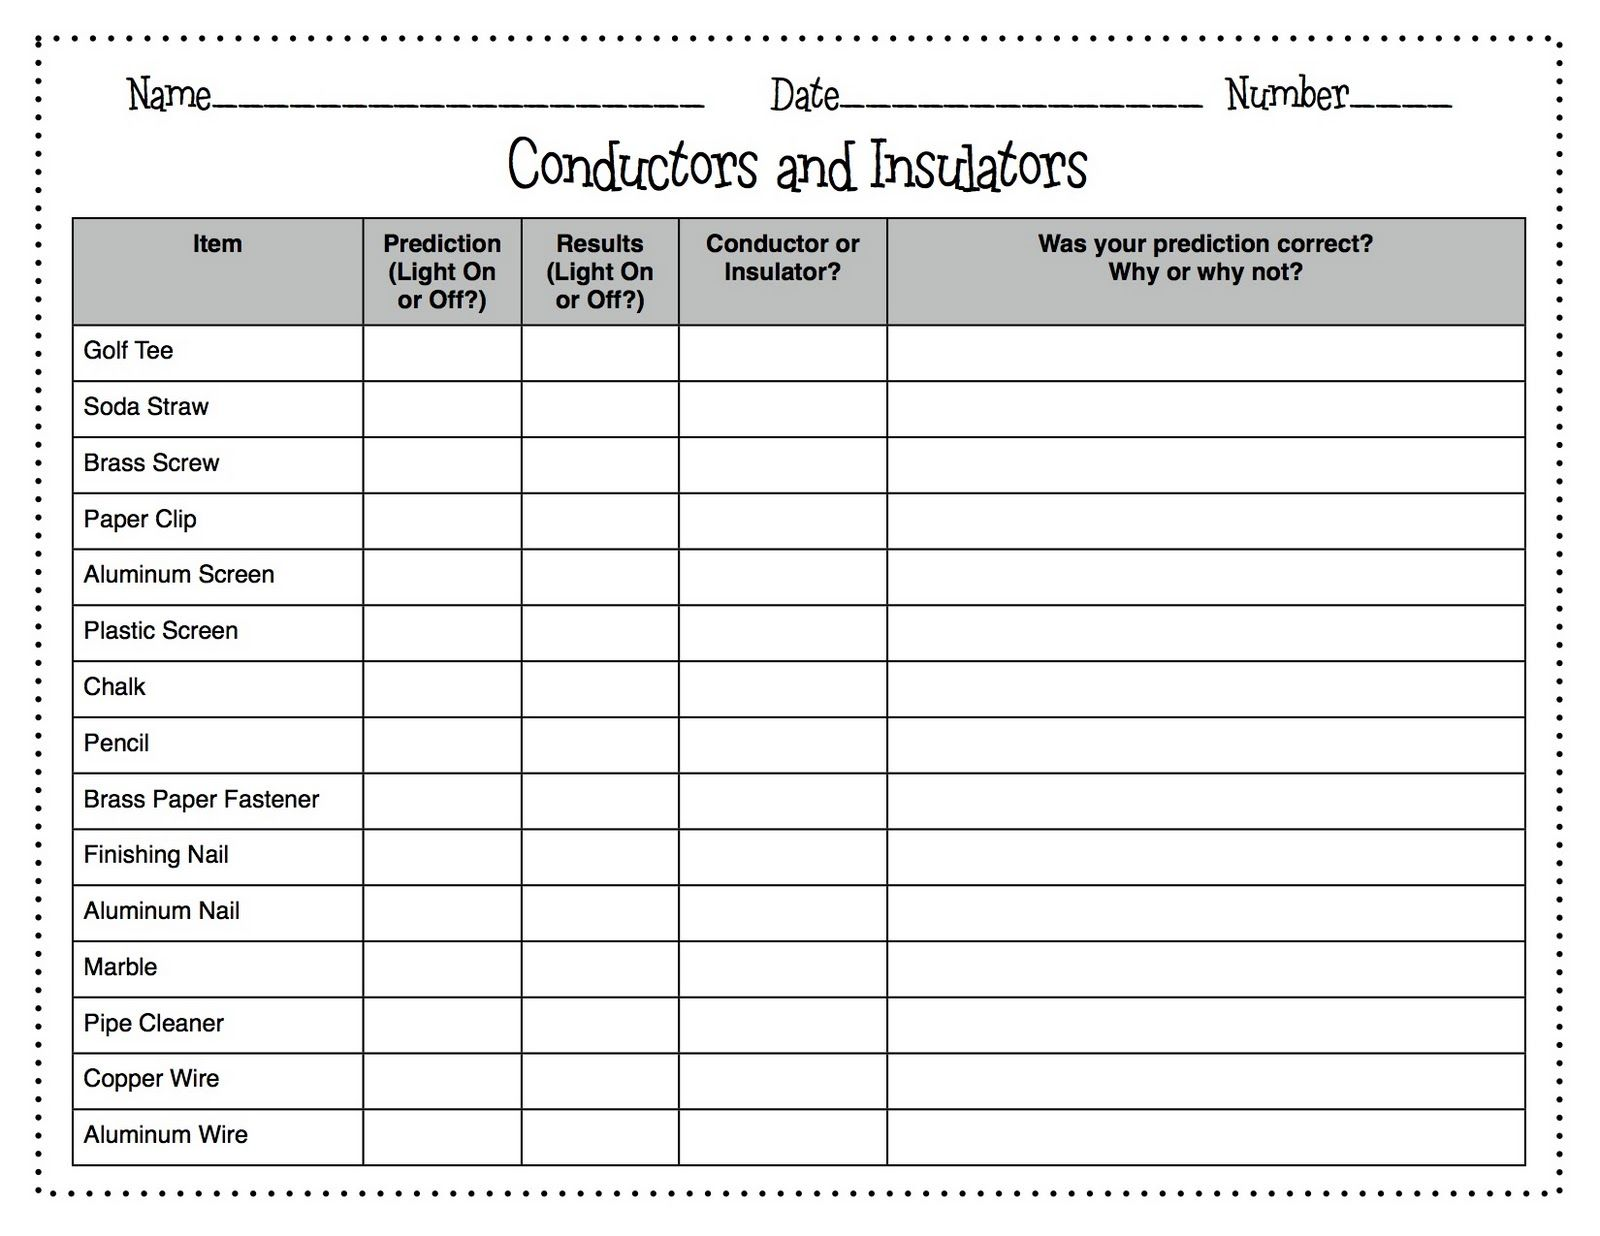 Conductors Vs Insulators Wkst